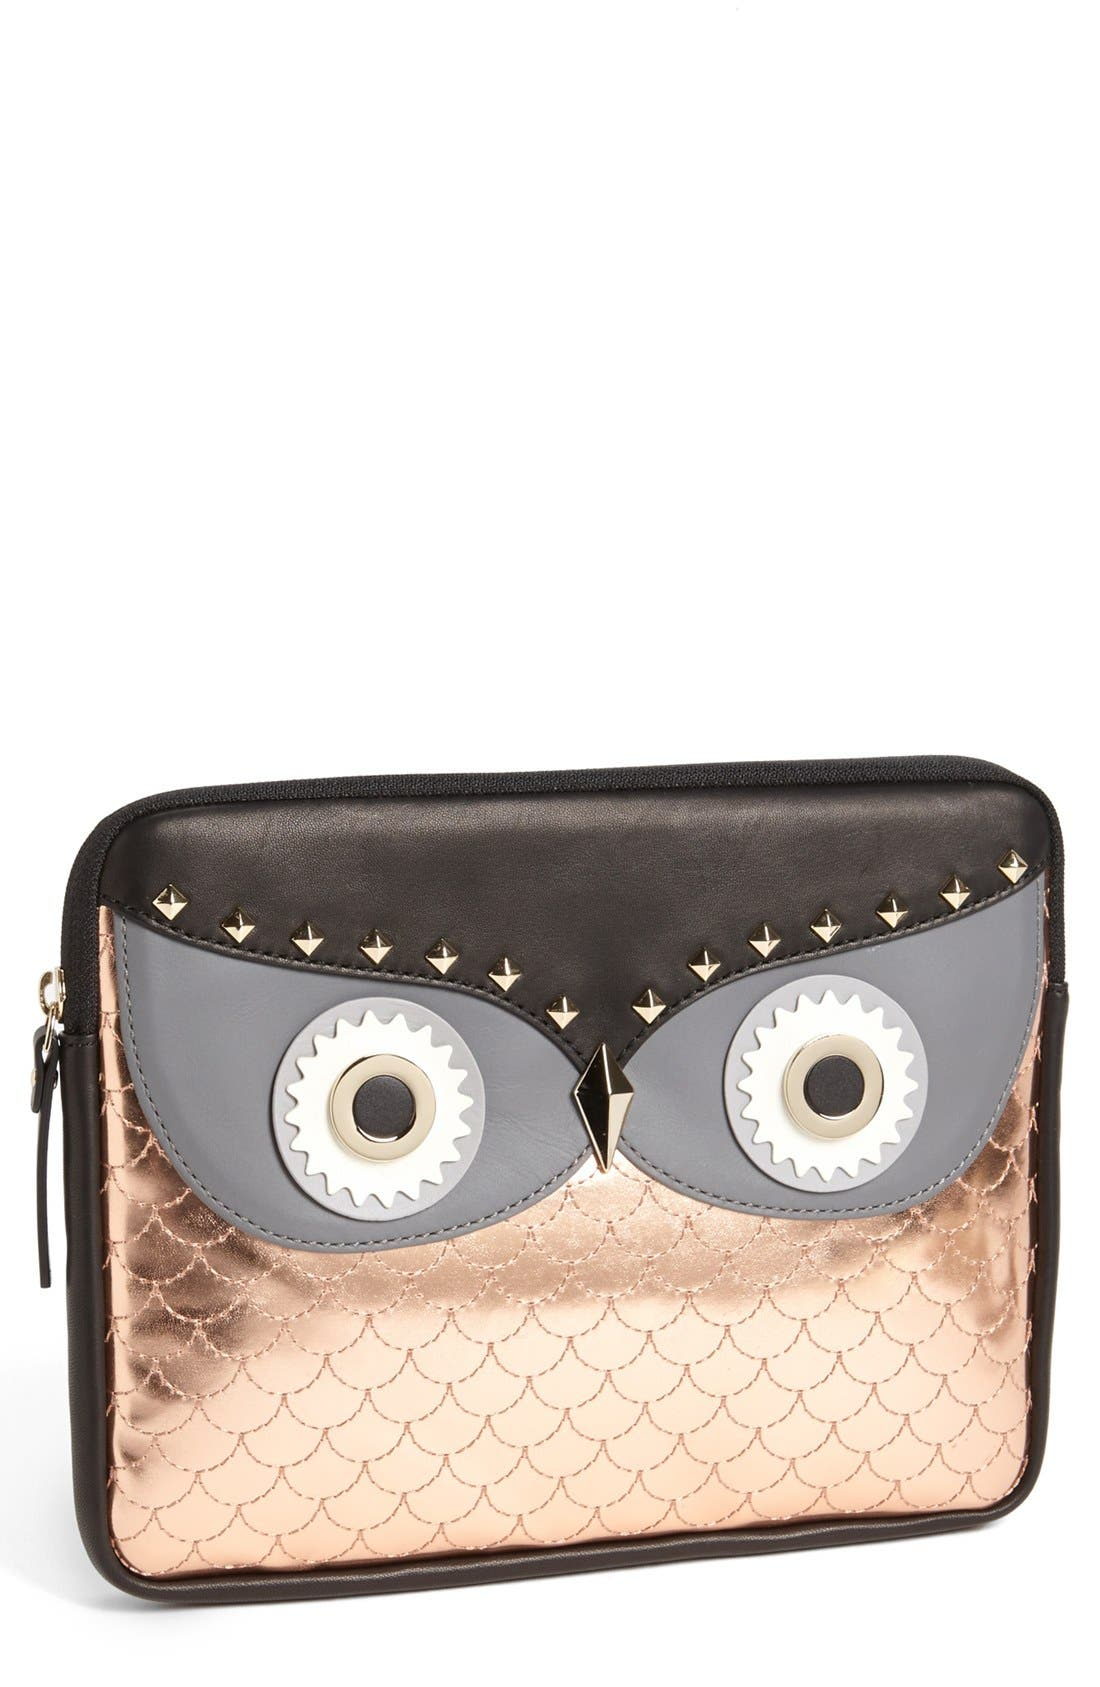 Alternate Image 1 Selected - kate spade new york 'owl' iPad sleeve